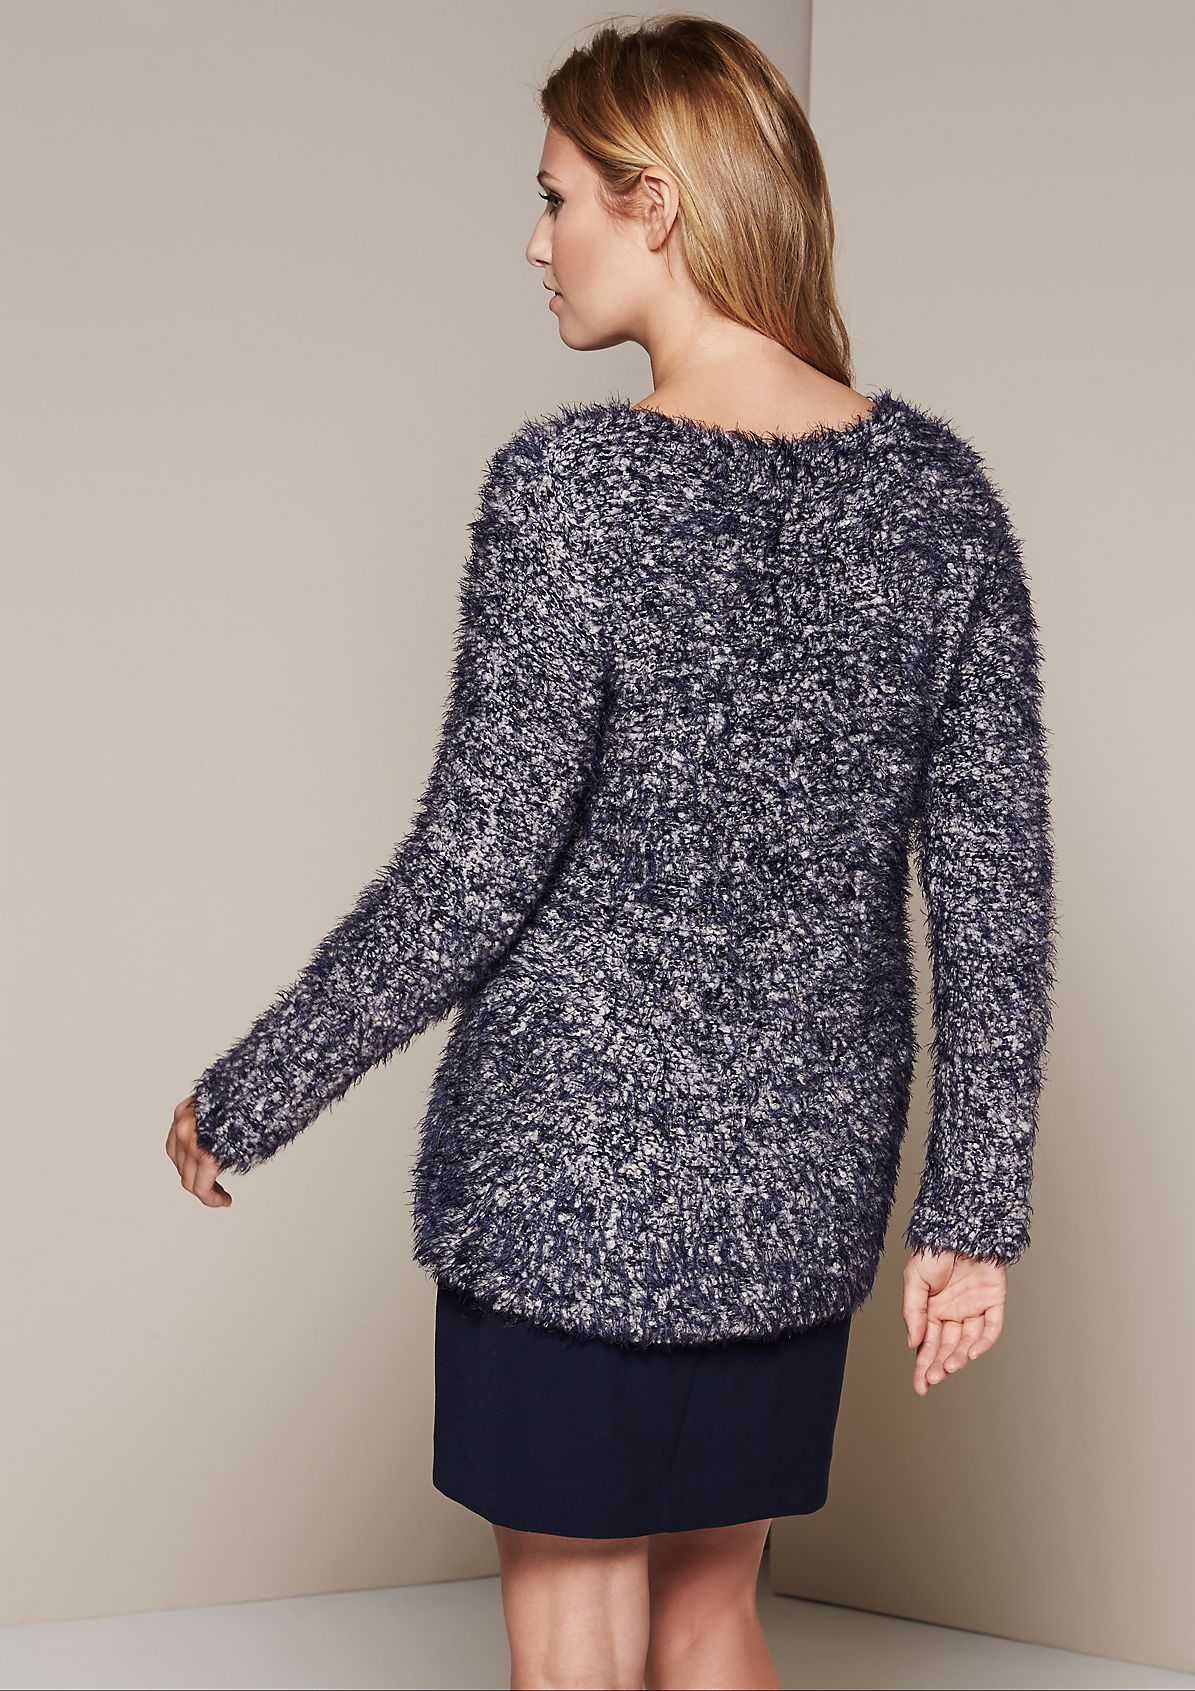 Extravagant knit jumper made of cosy two-tone long yarn from s.Oliver